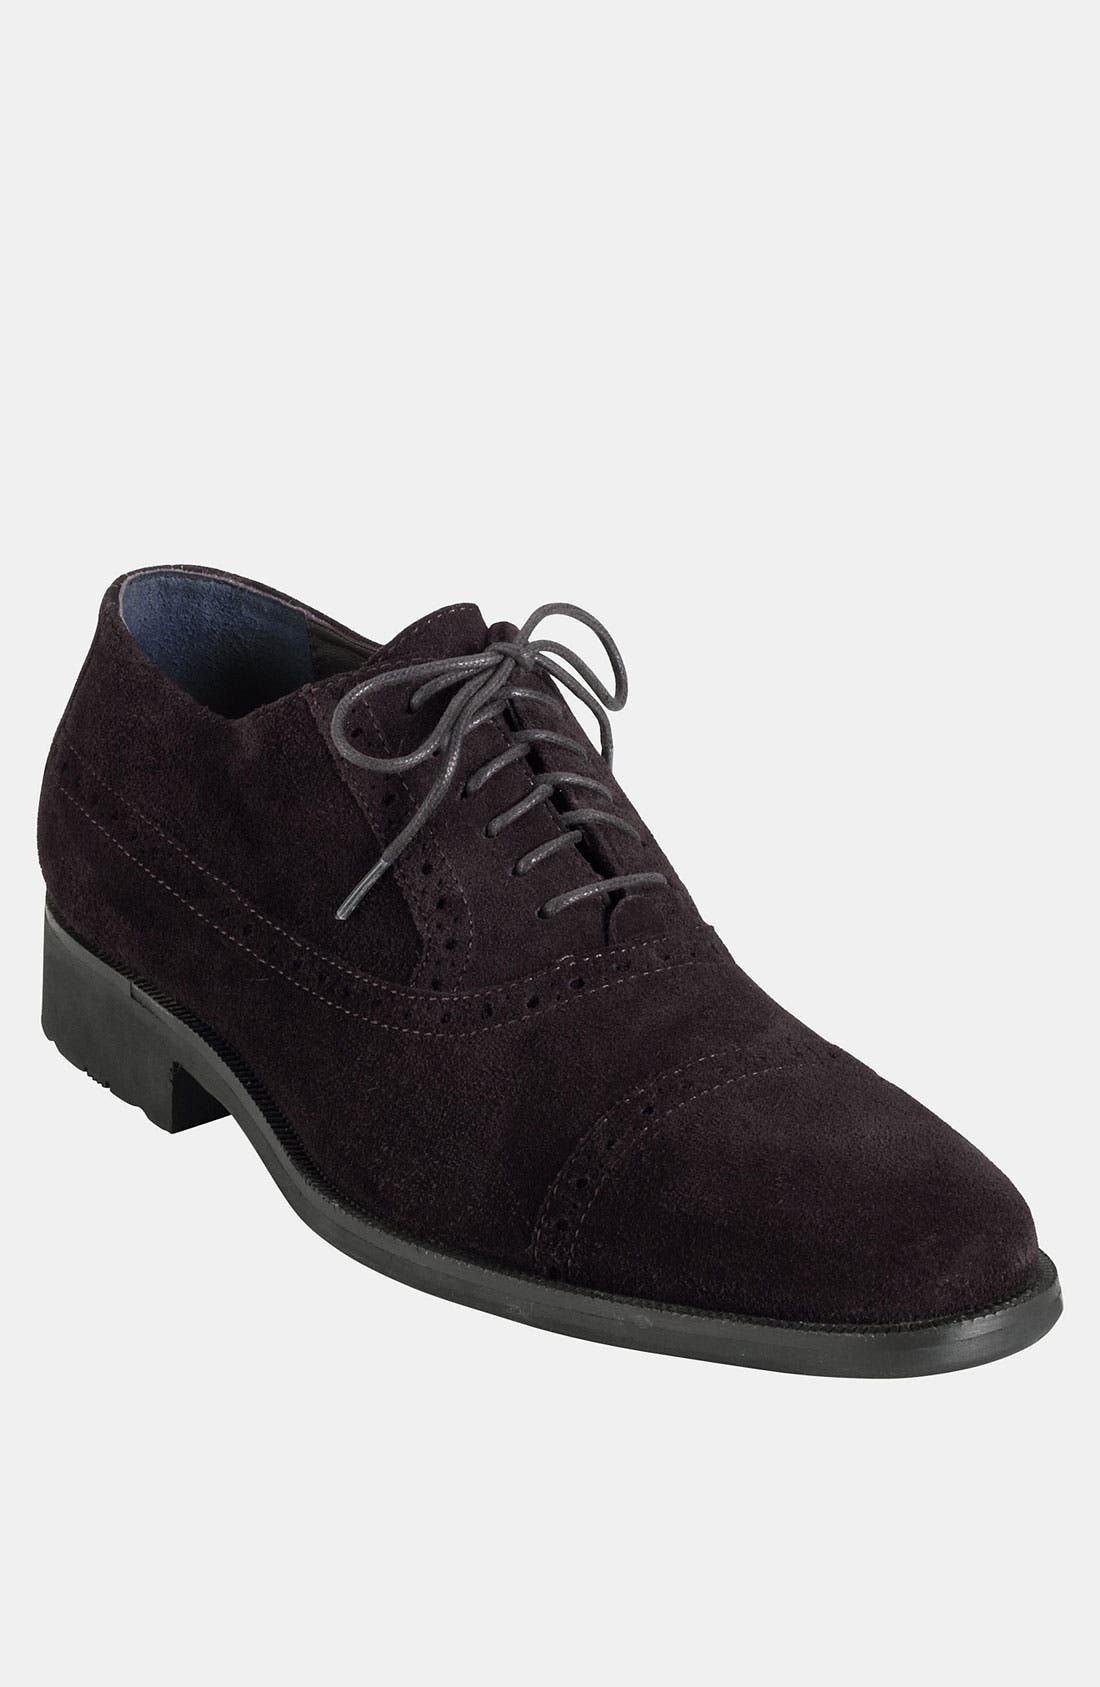 Alternate Image 1 Selected - Cole Haan 'Air Stanton' Cap Toe Oxford